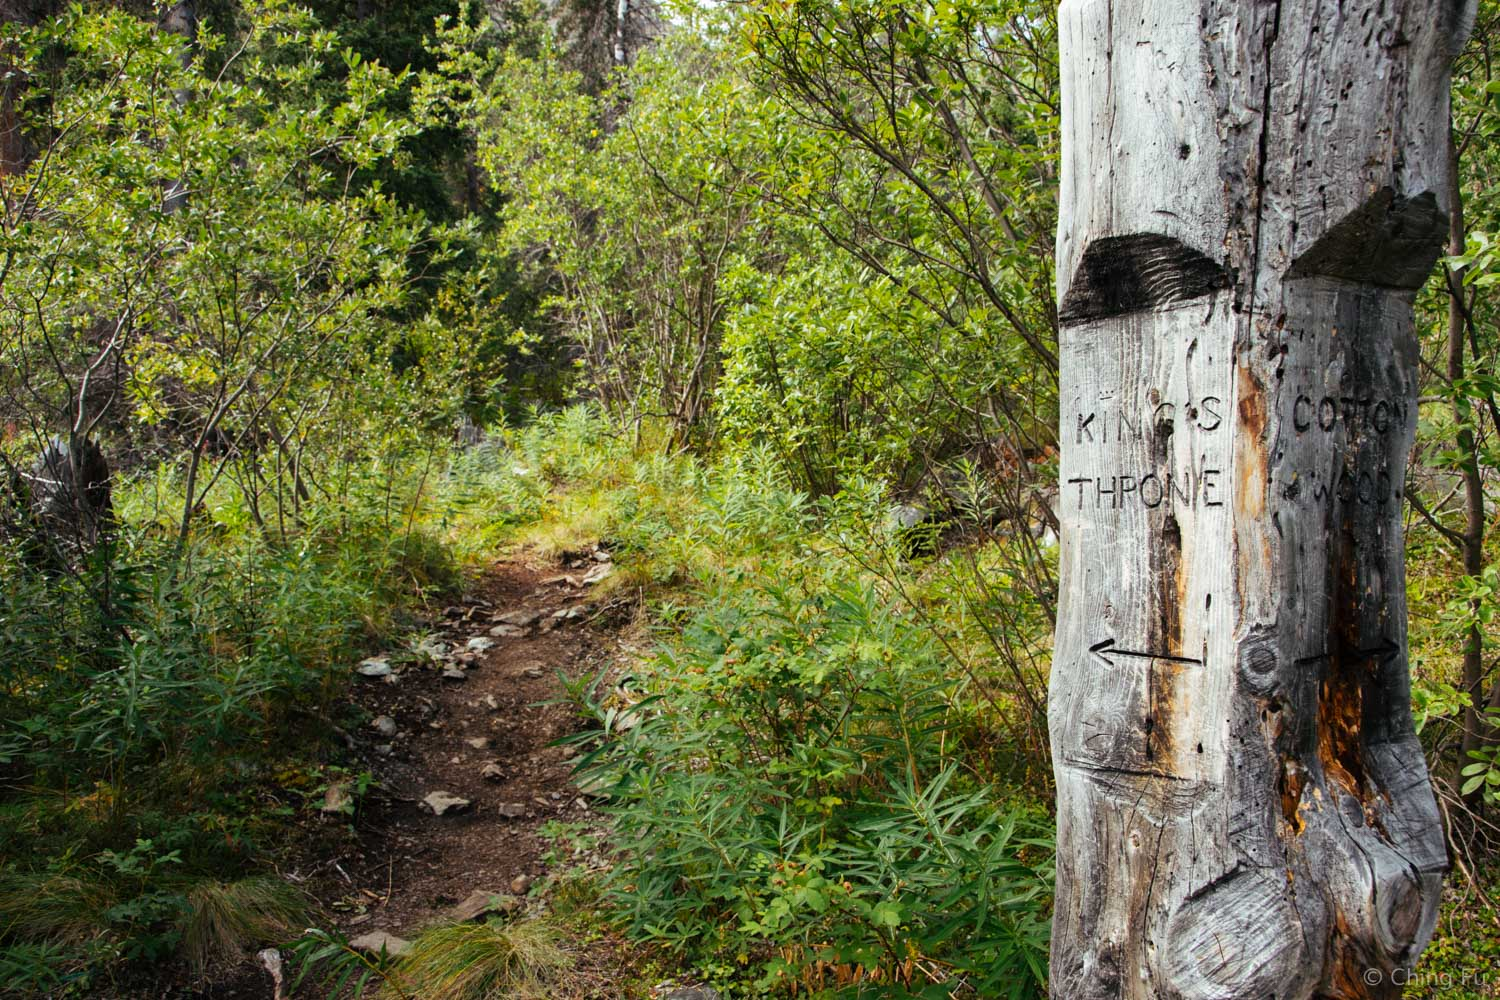 The beginning of King's Throne trail.